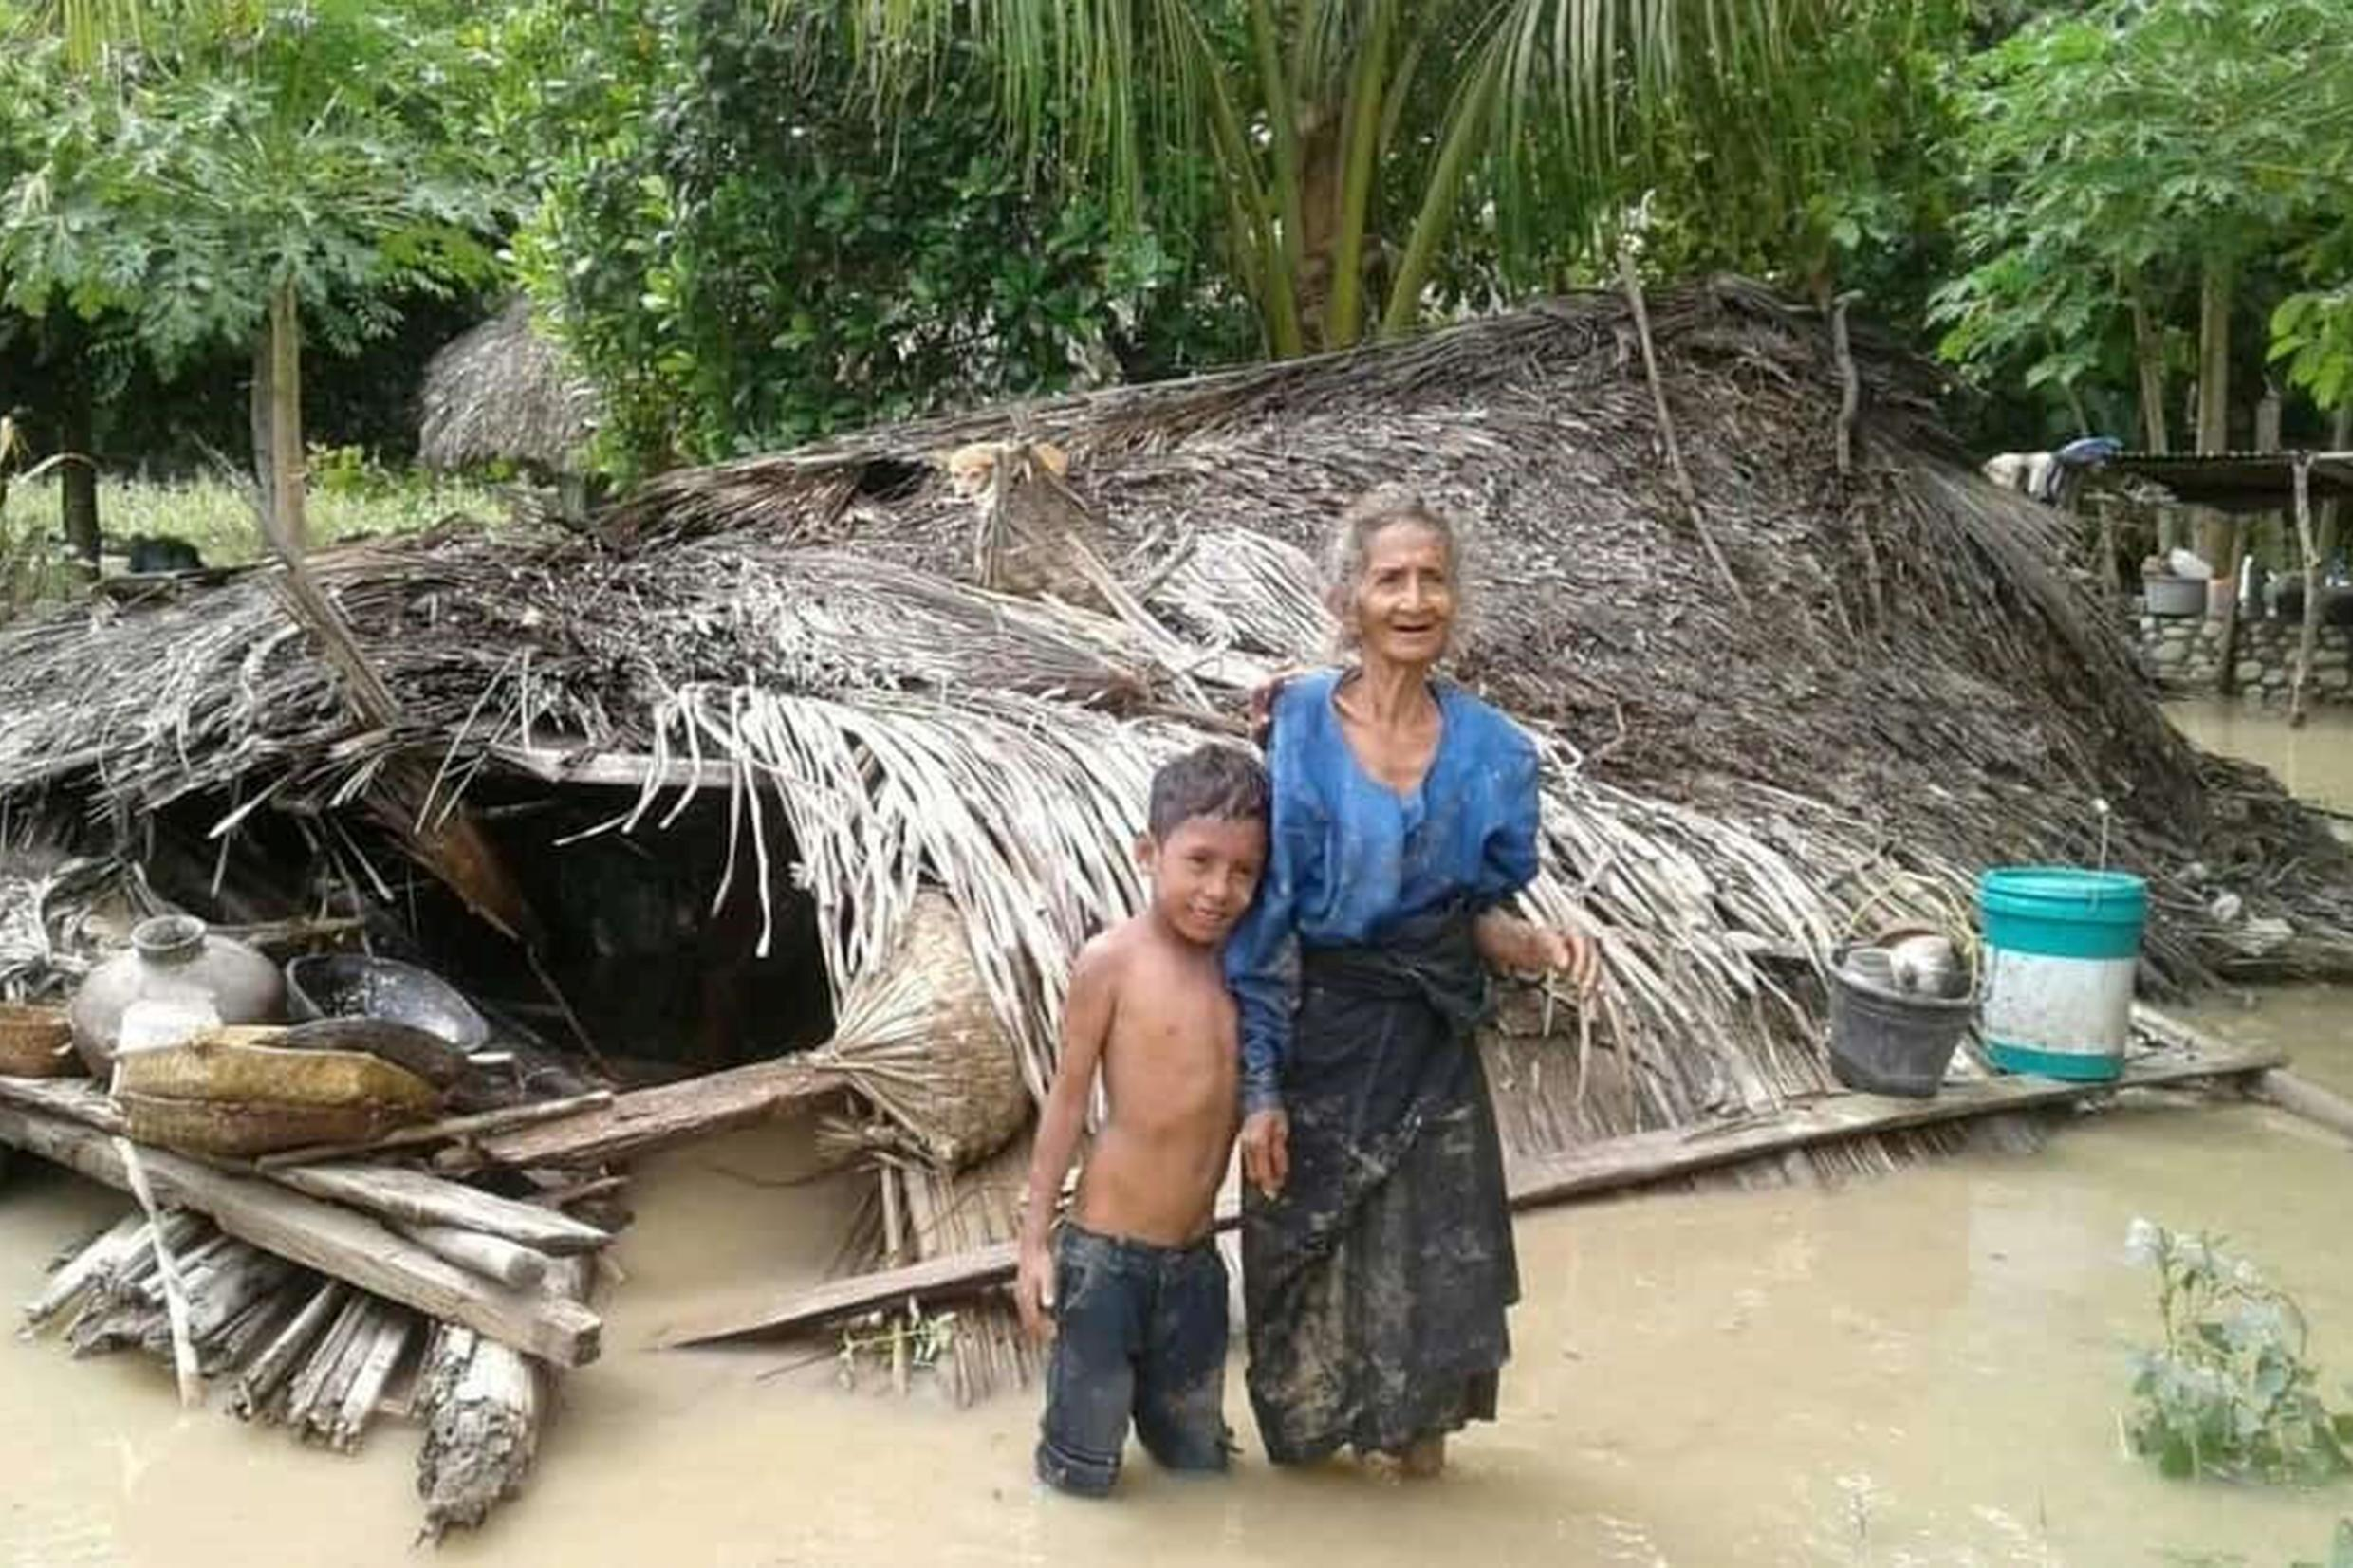 Floods sparked by torrential rain have wreaked havoc and destruction on islands stretching from Flores in Indonesia to East Timor, sending thousands fleeing into shelters